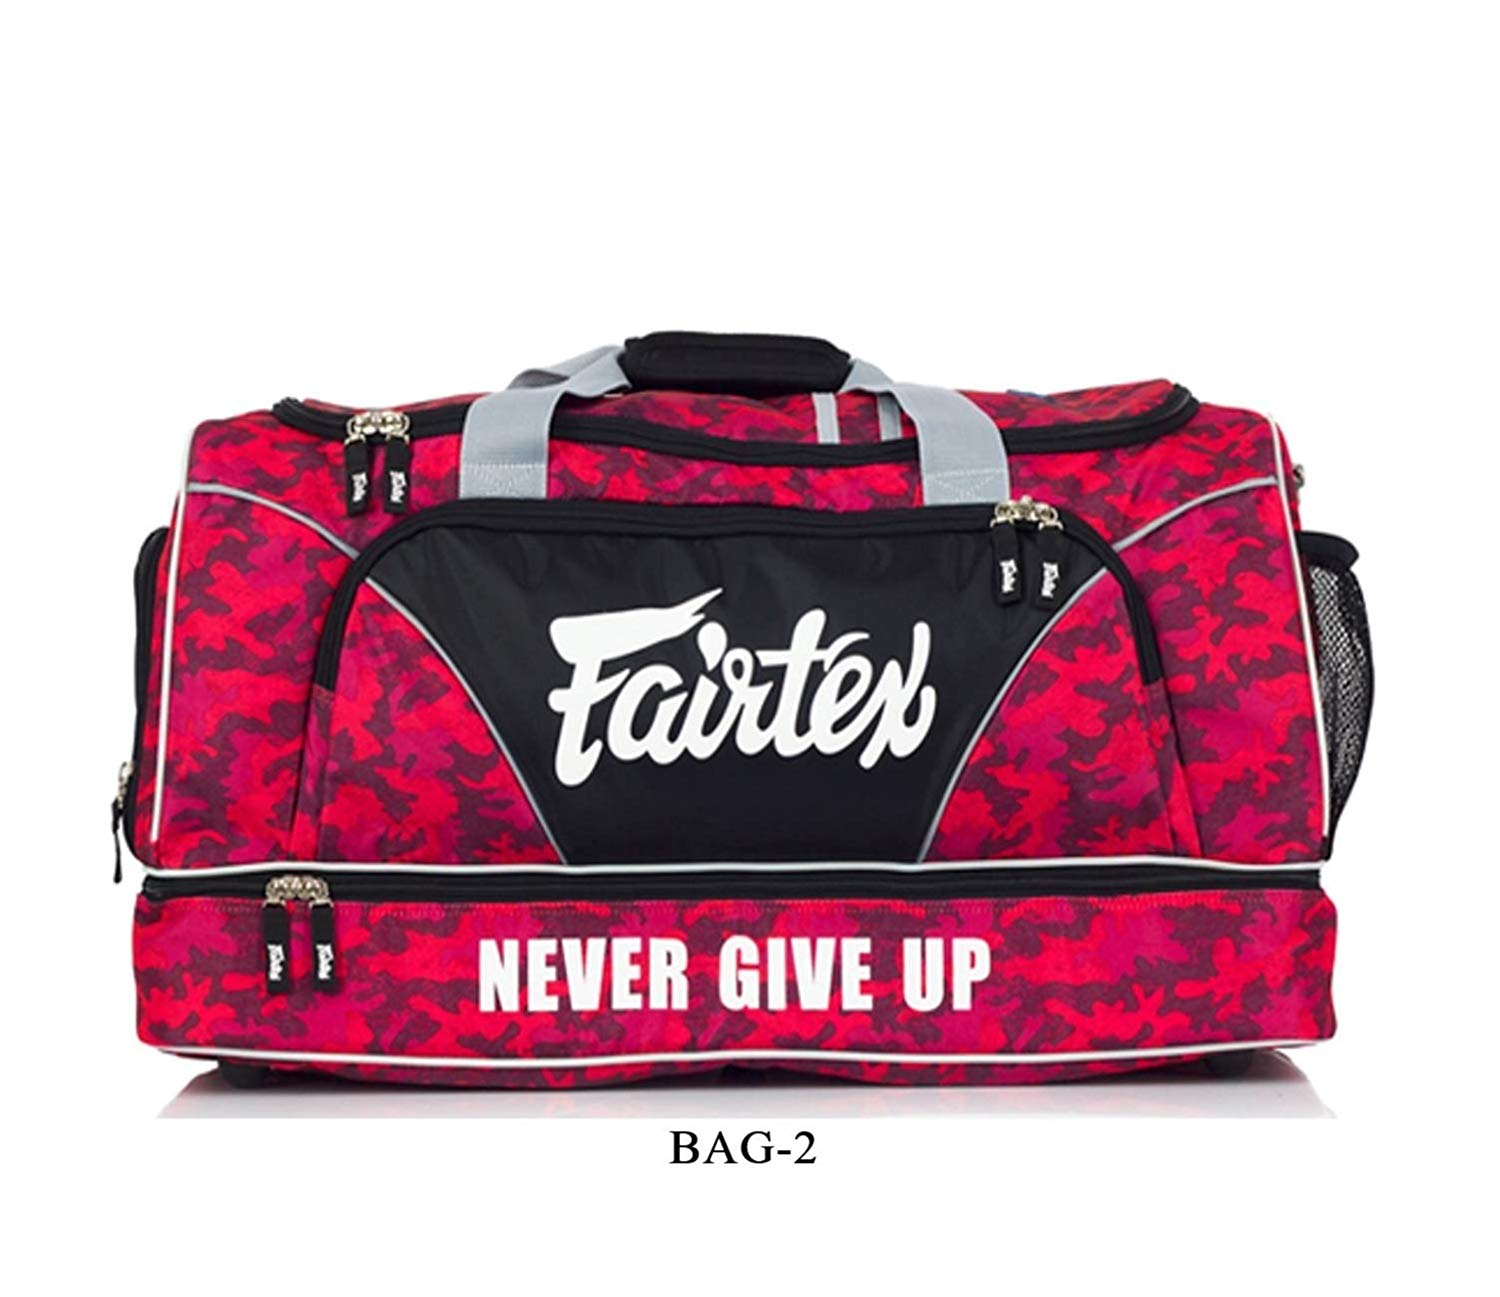 Sac de sport Fairtex Rouge camo